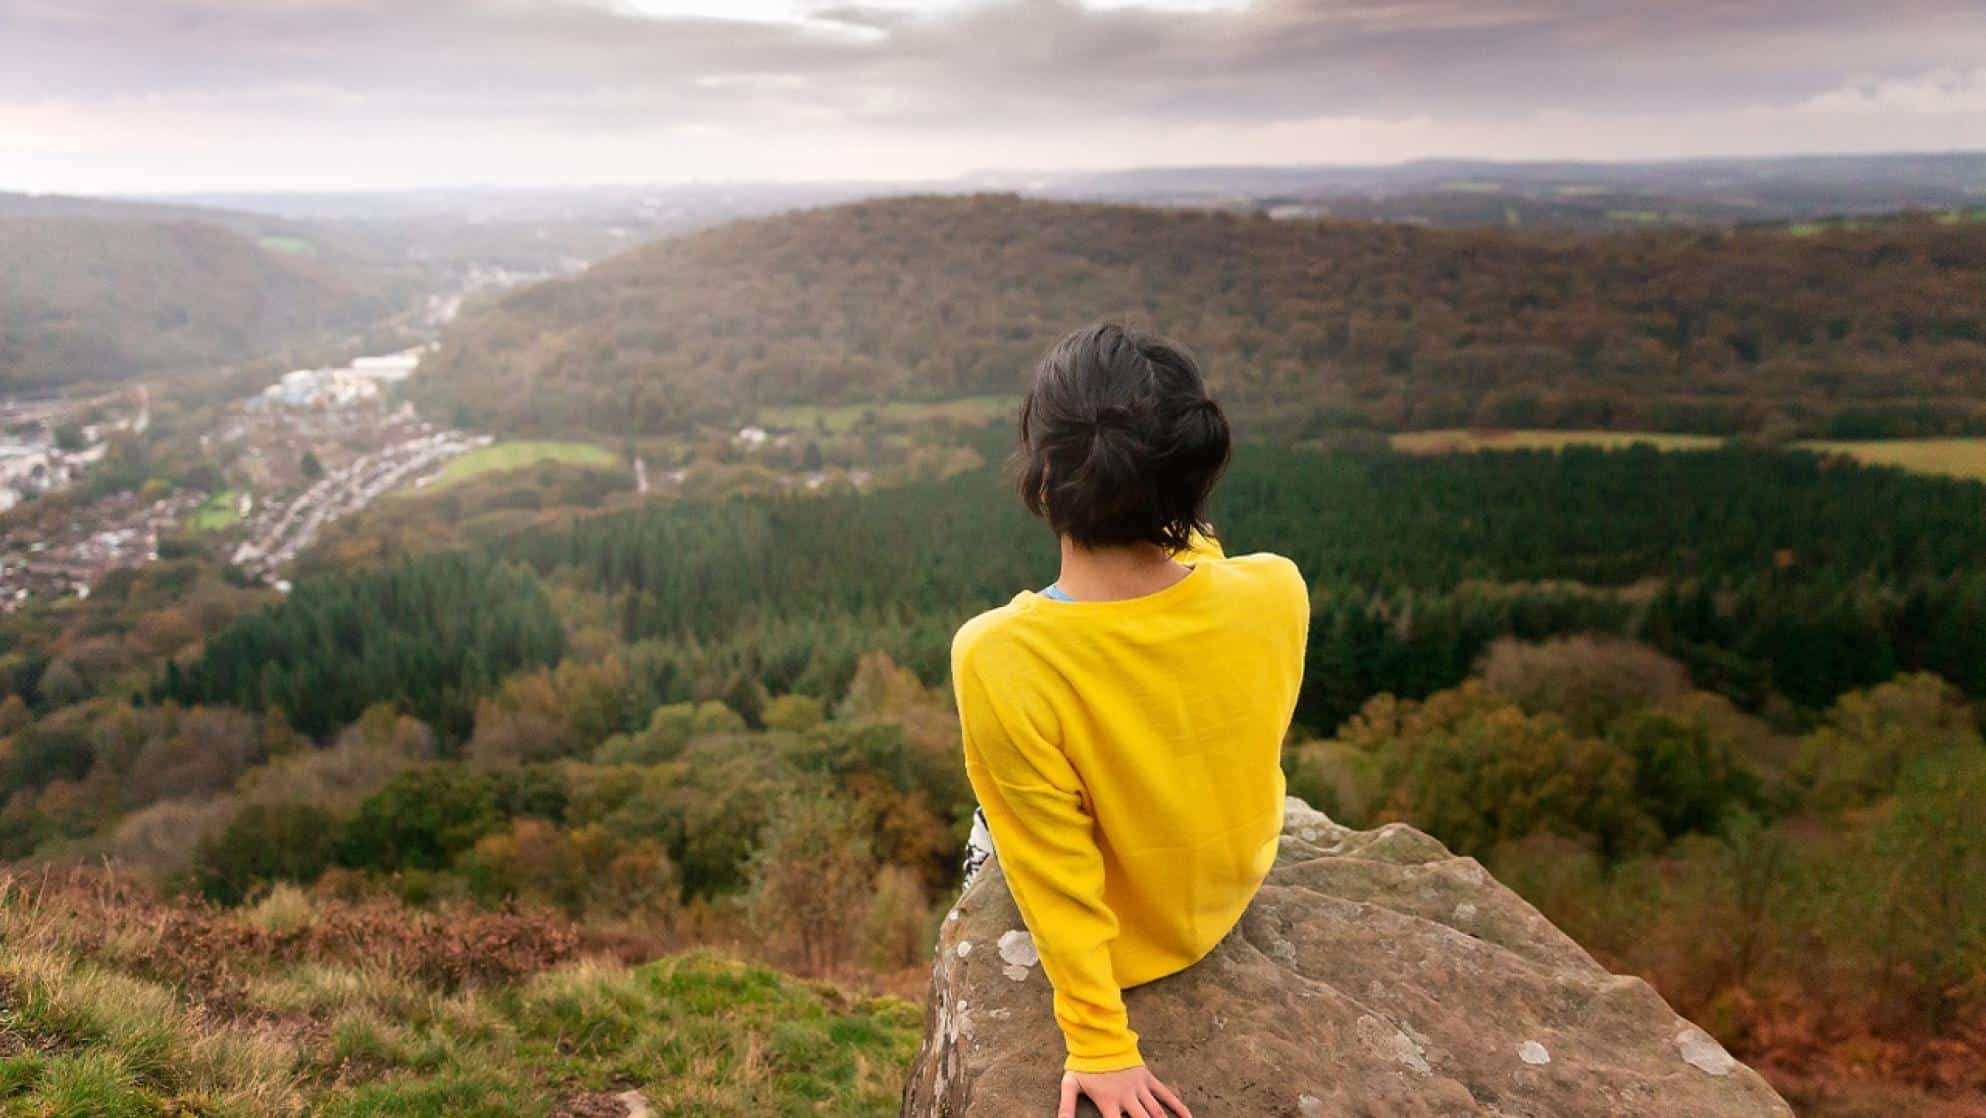 Person sitting on edge of a cliff